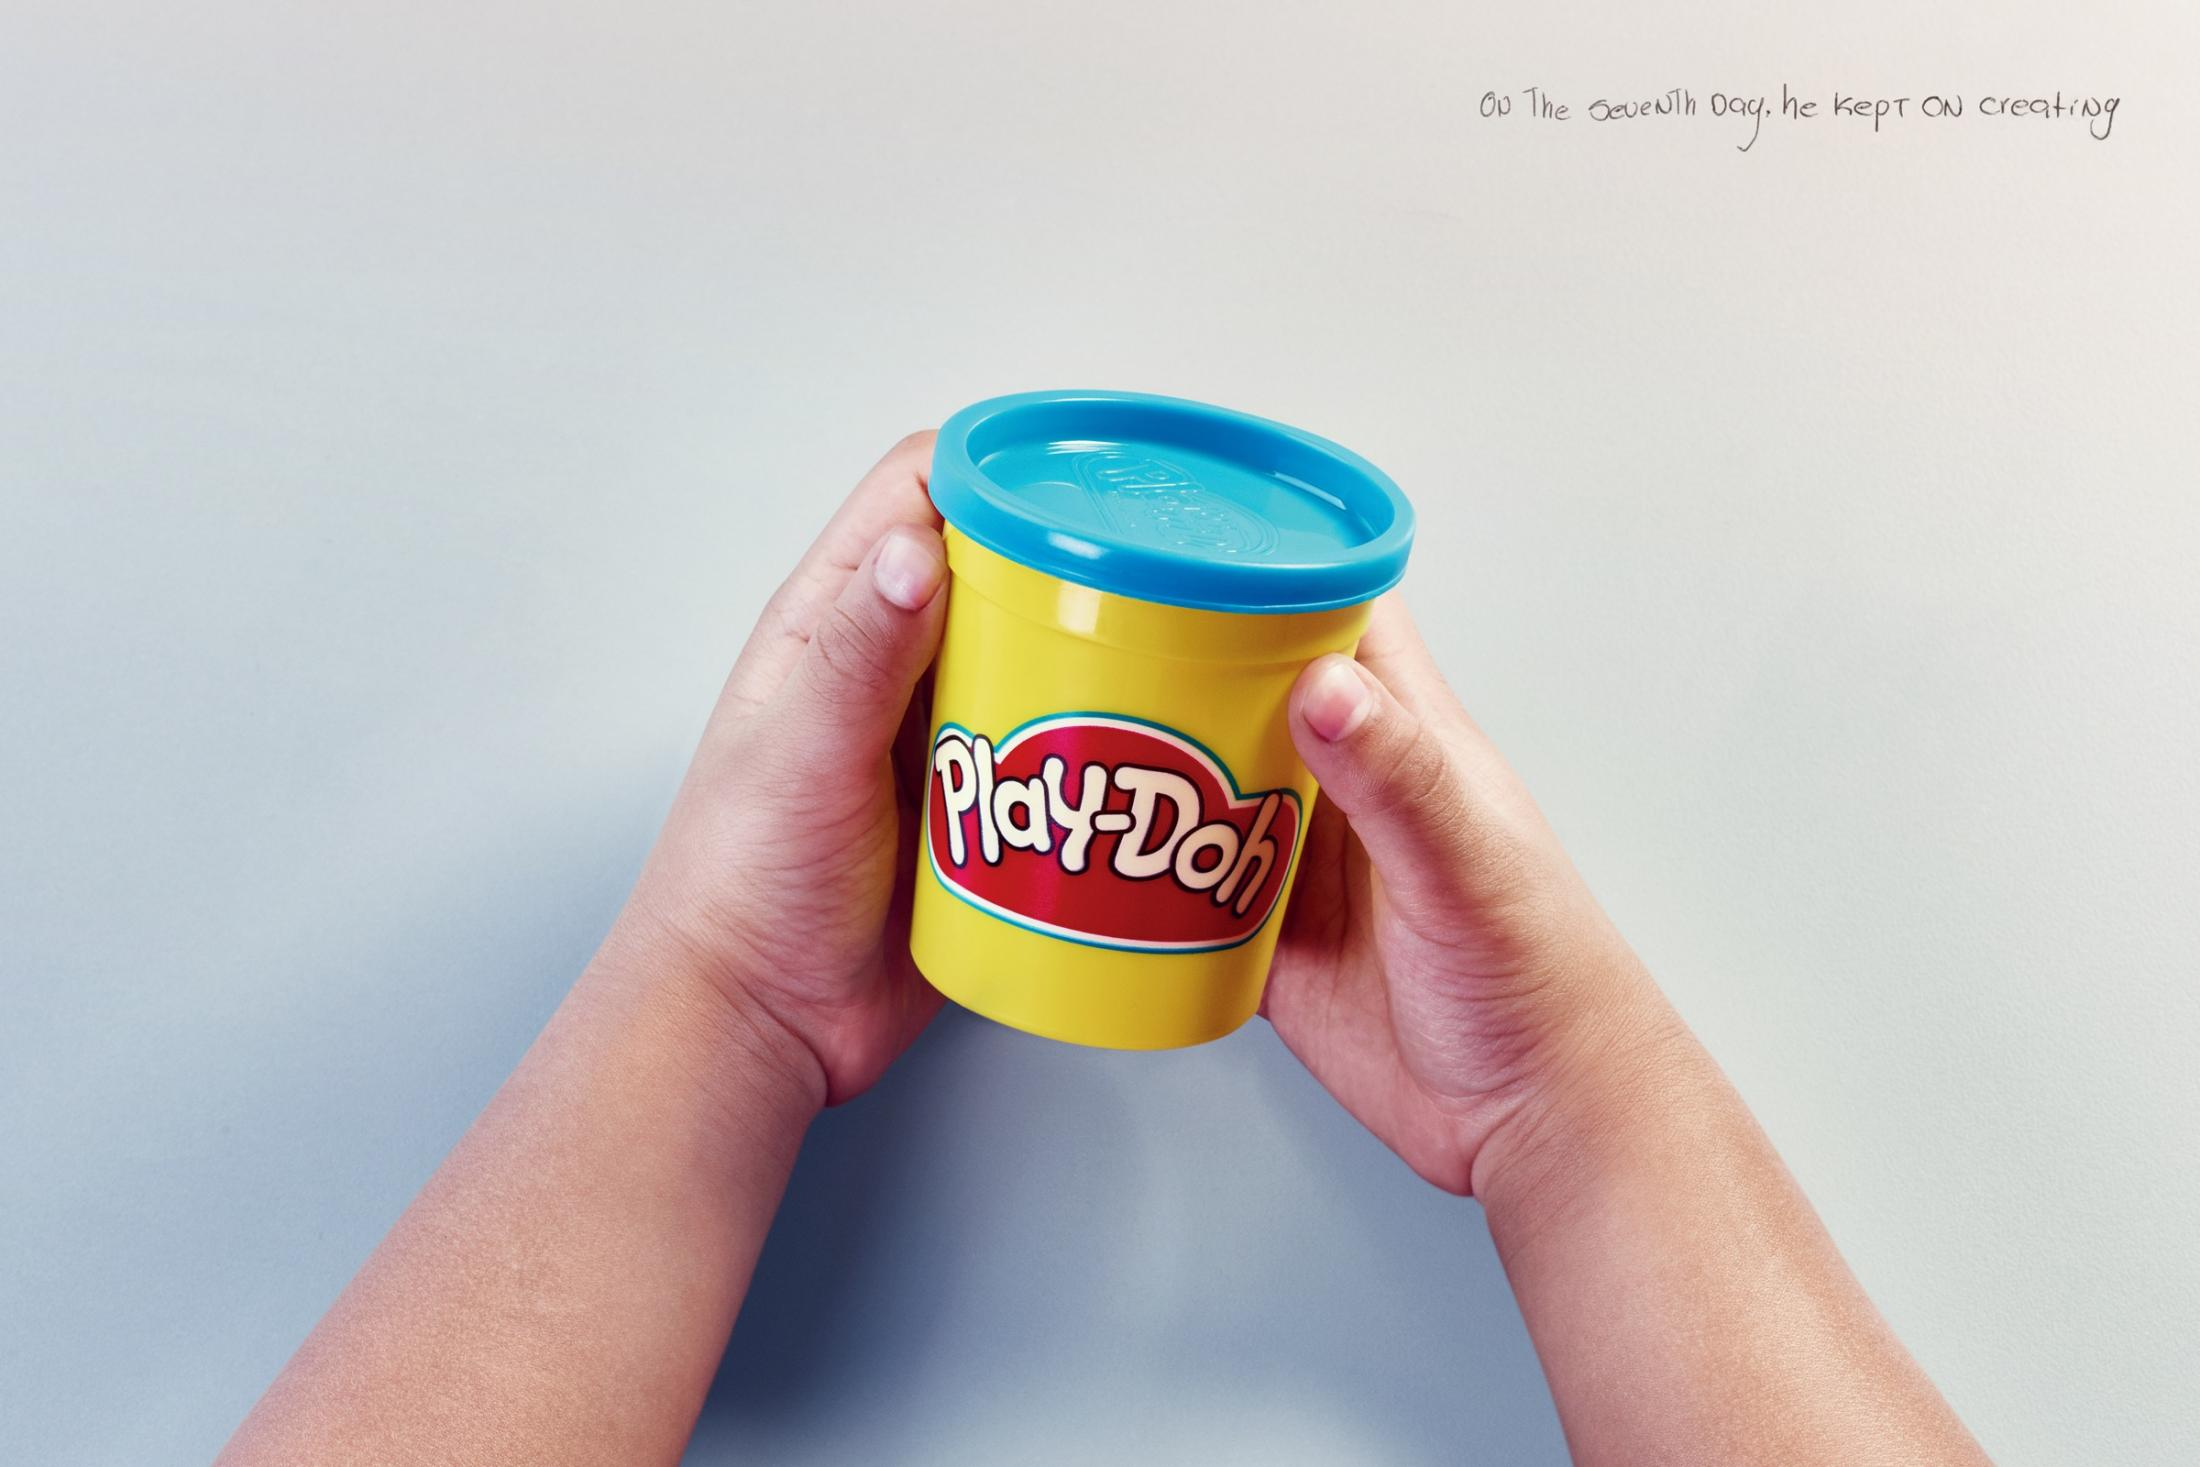 Play-Doh Print Ad - The seventh day